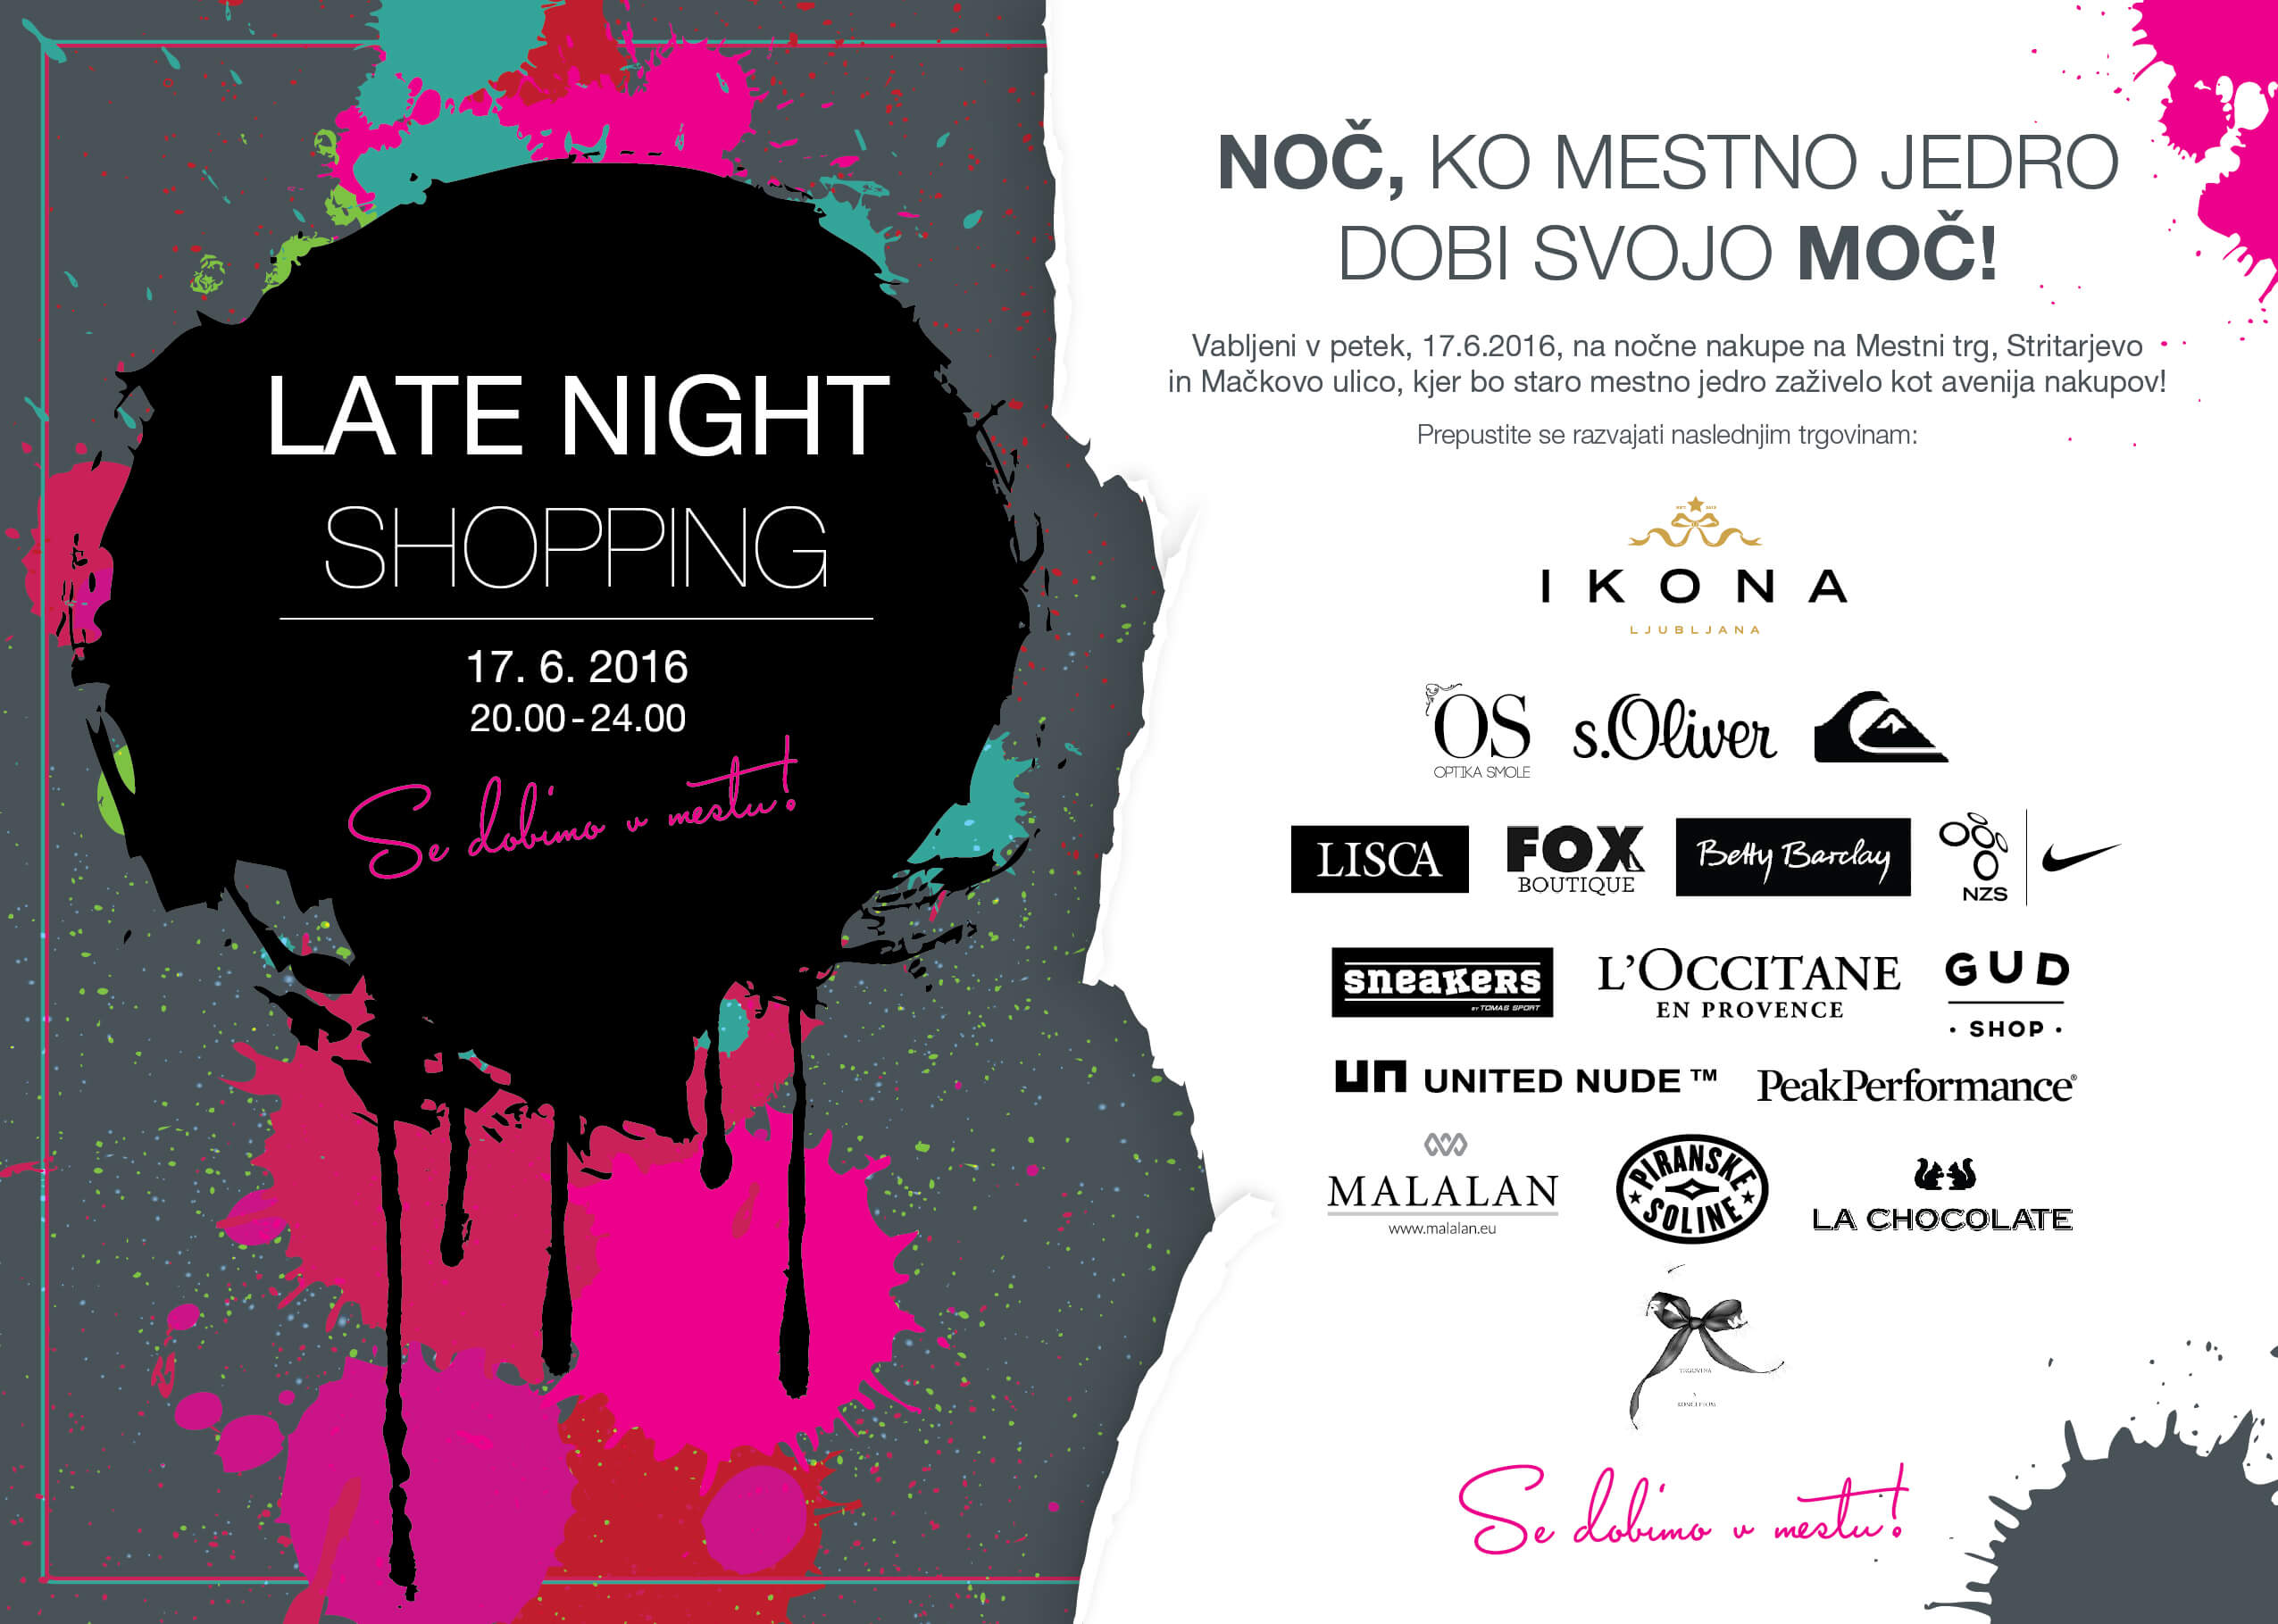 Pentlja Concept Store Late Night Shopping Invitation PENTLJA